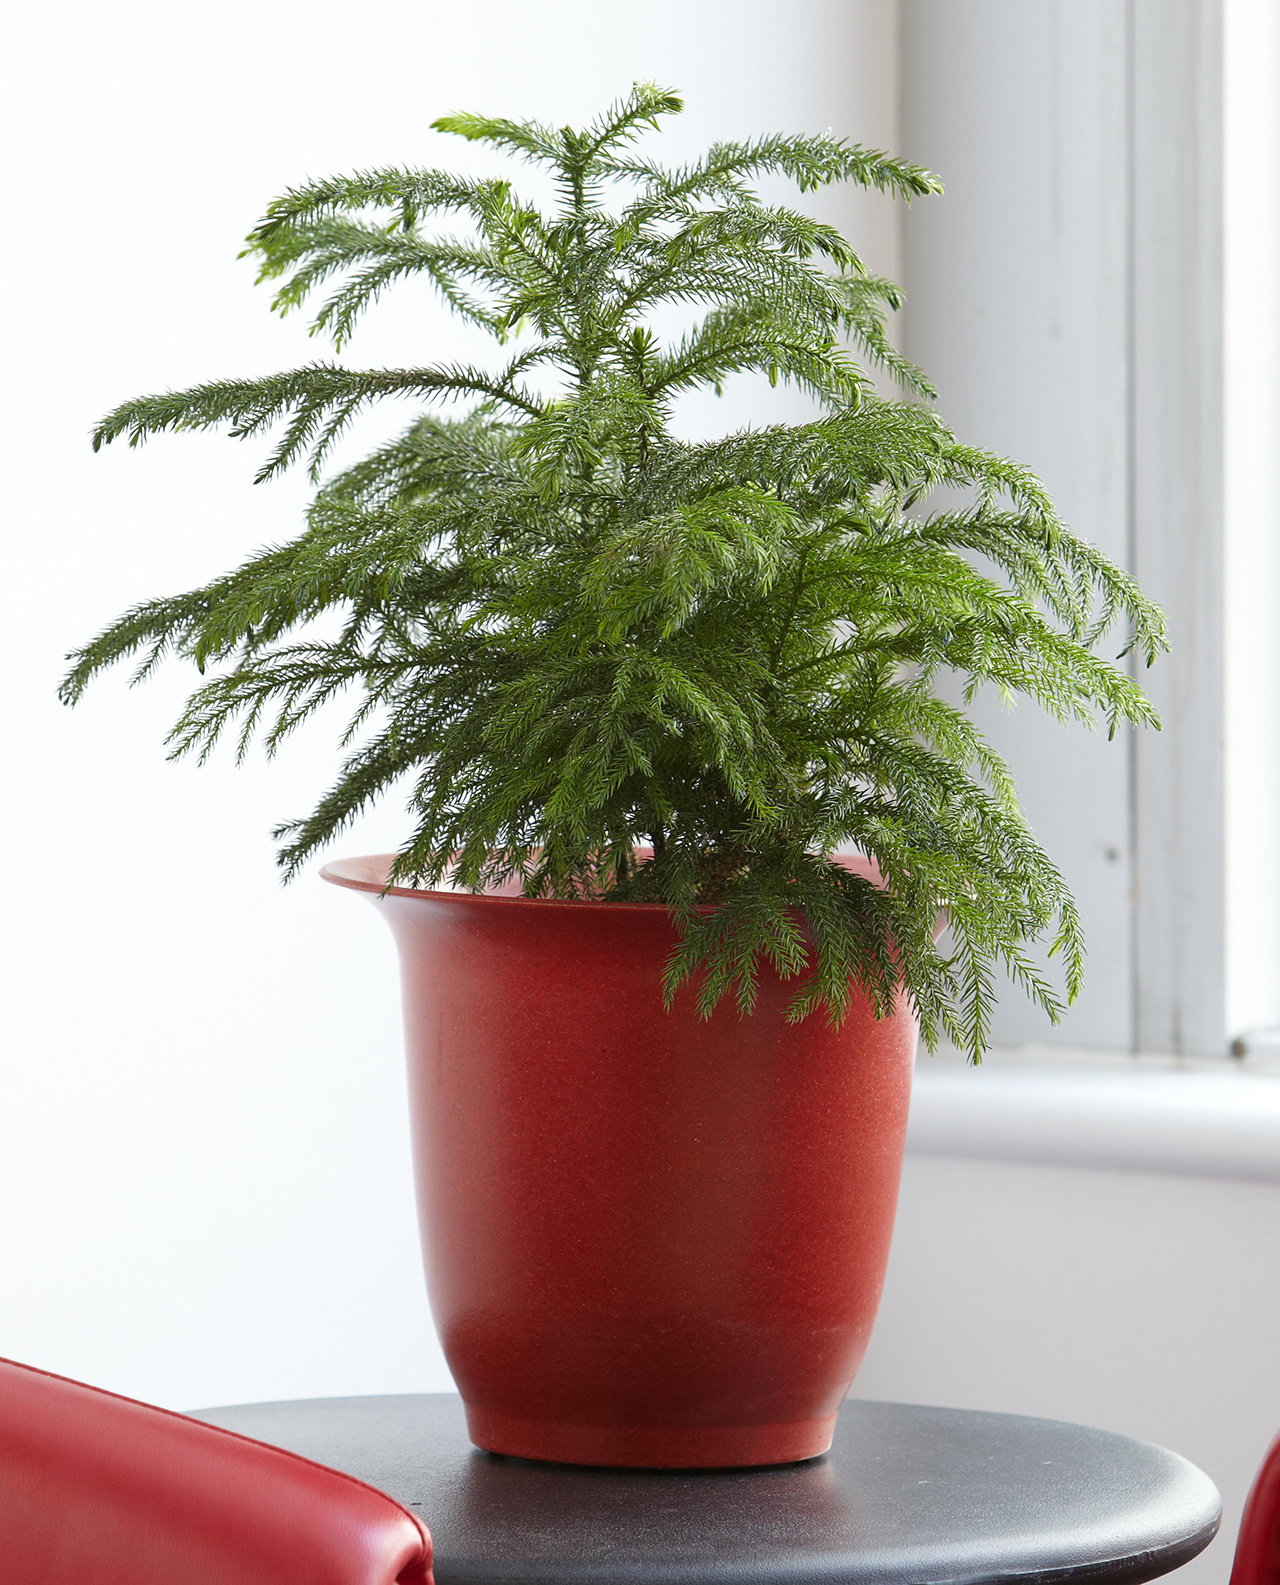 norfolk pine in red potter on table